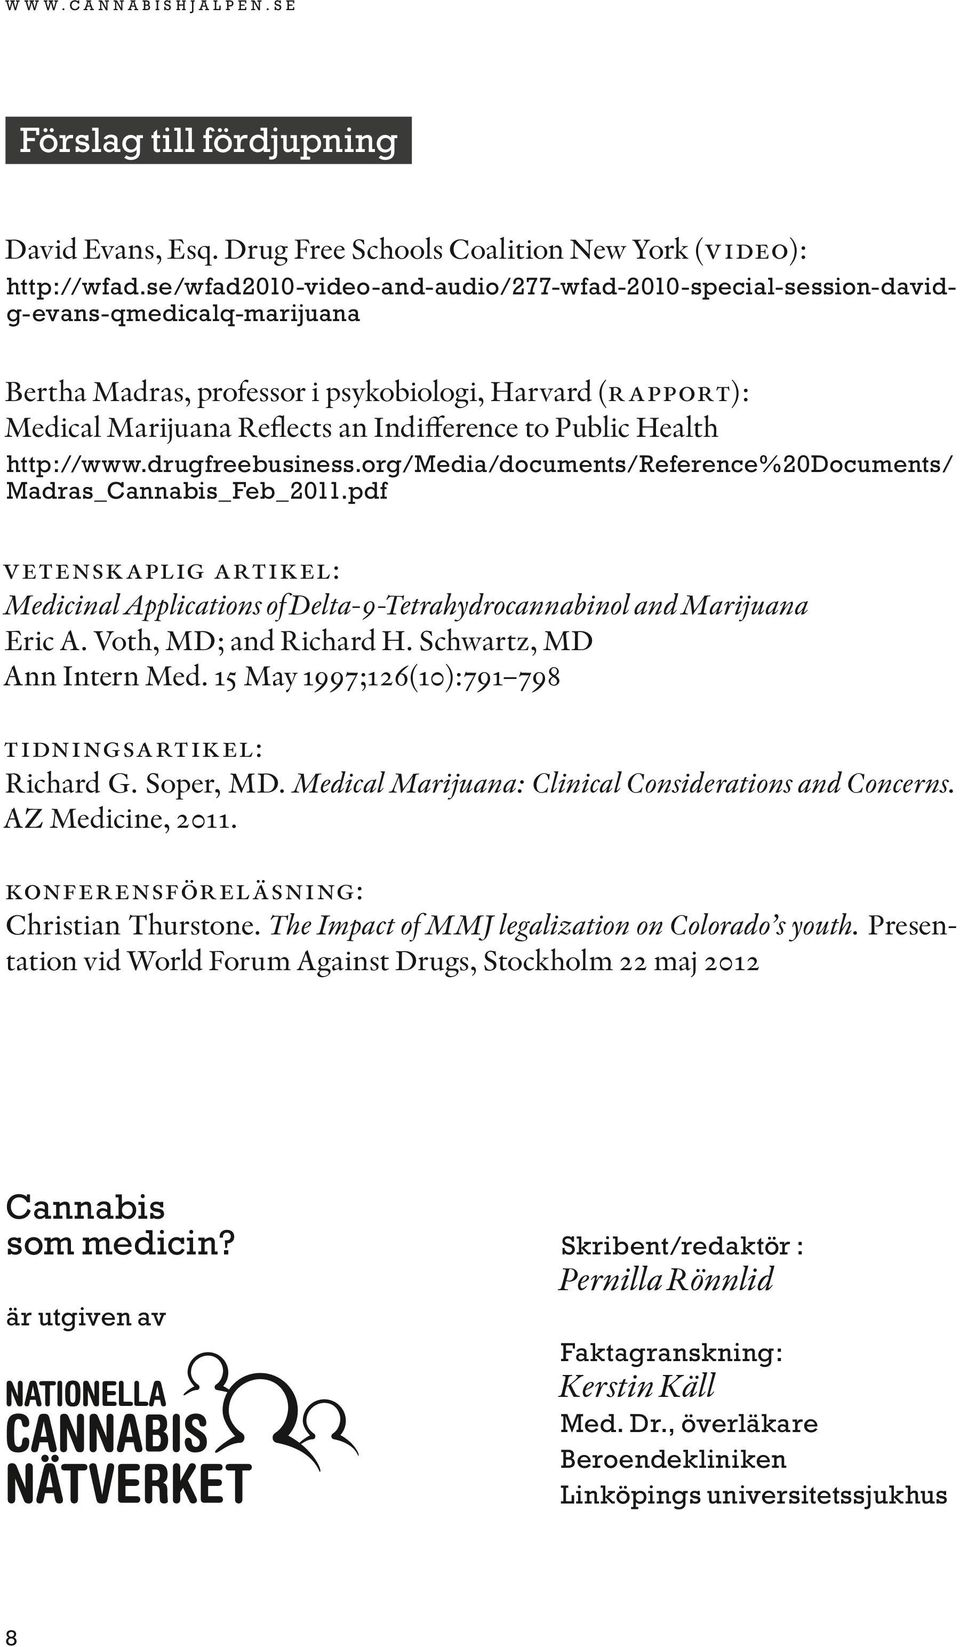 Public Health http://www.drugfreebusiness.org/media/documents/reference%20documents/ Madras_Cannabis_Feb_2011.